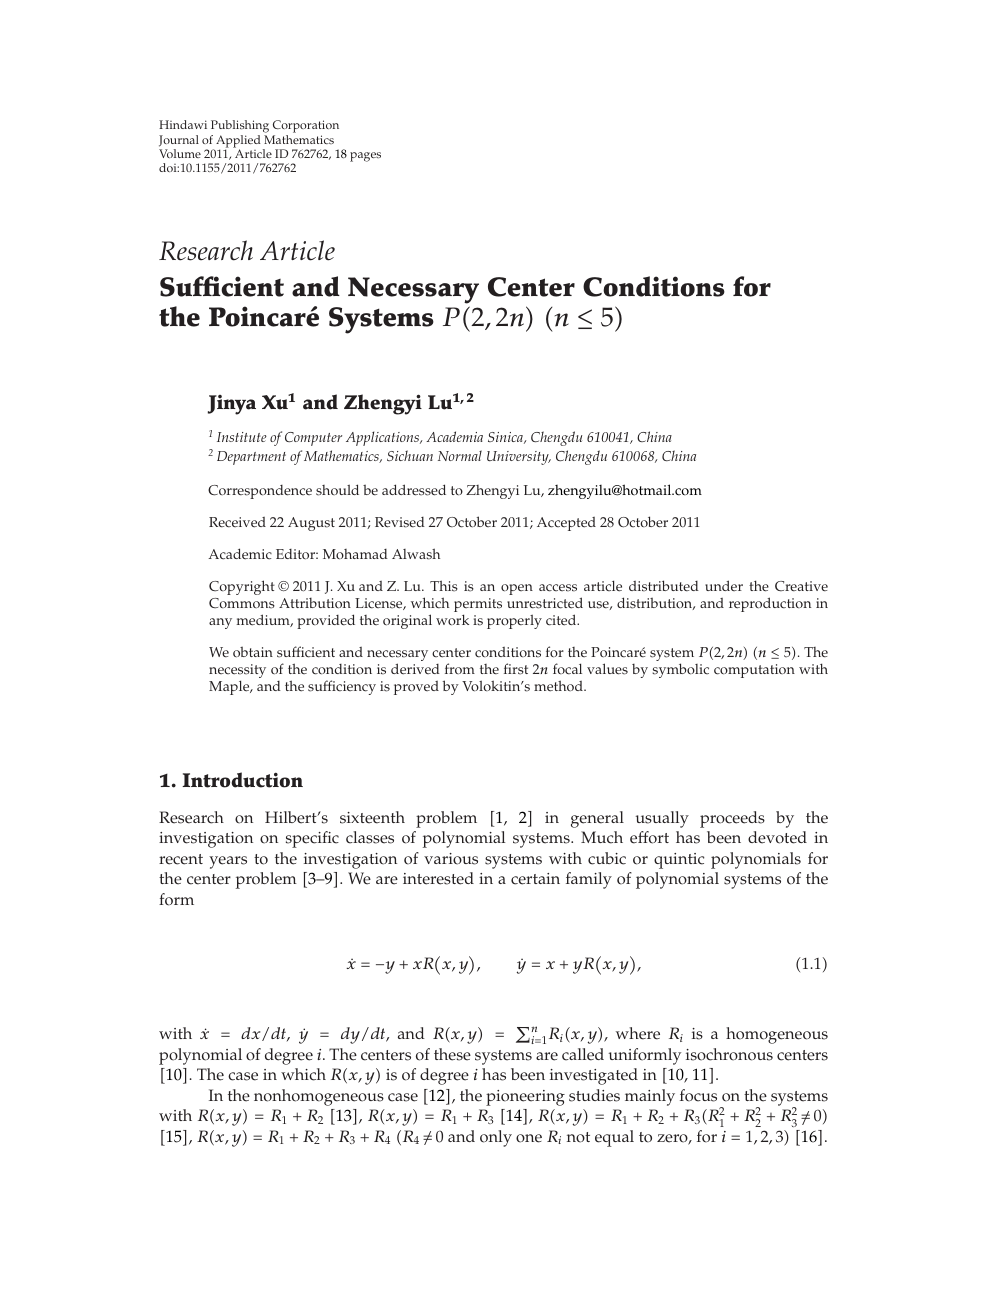 Sufficient and Necessary Center Conditions for the Poincaré Systems